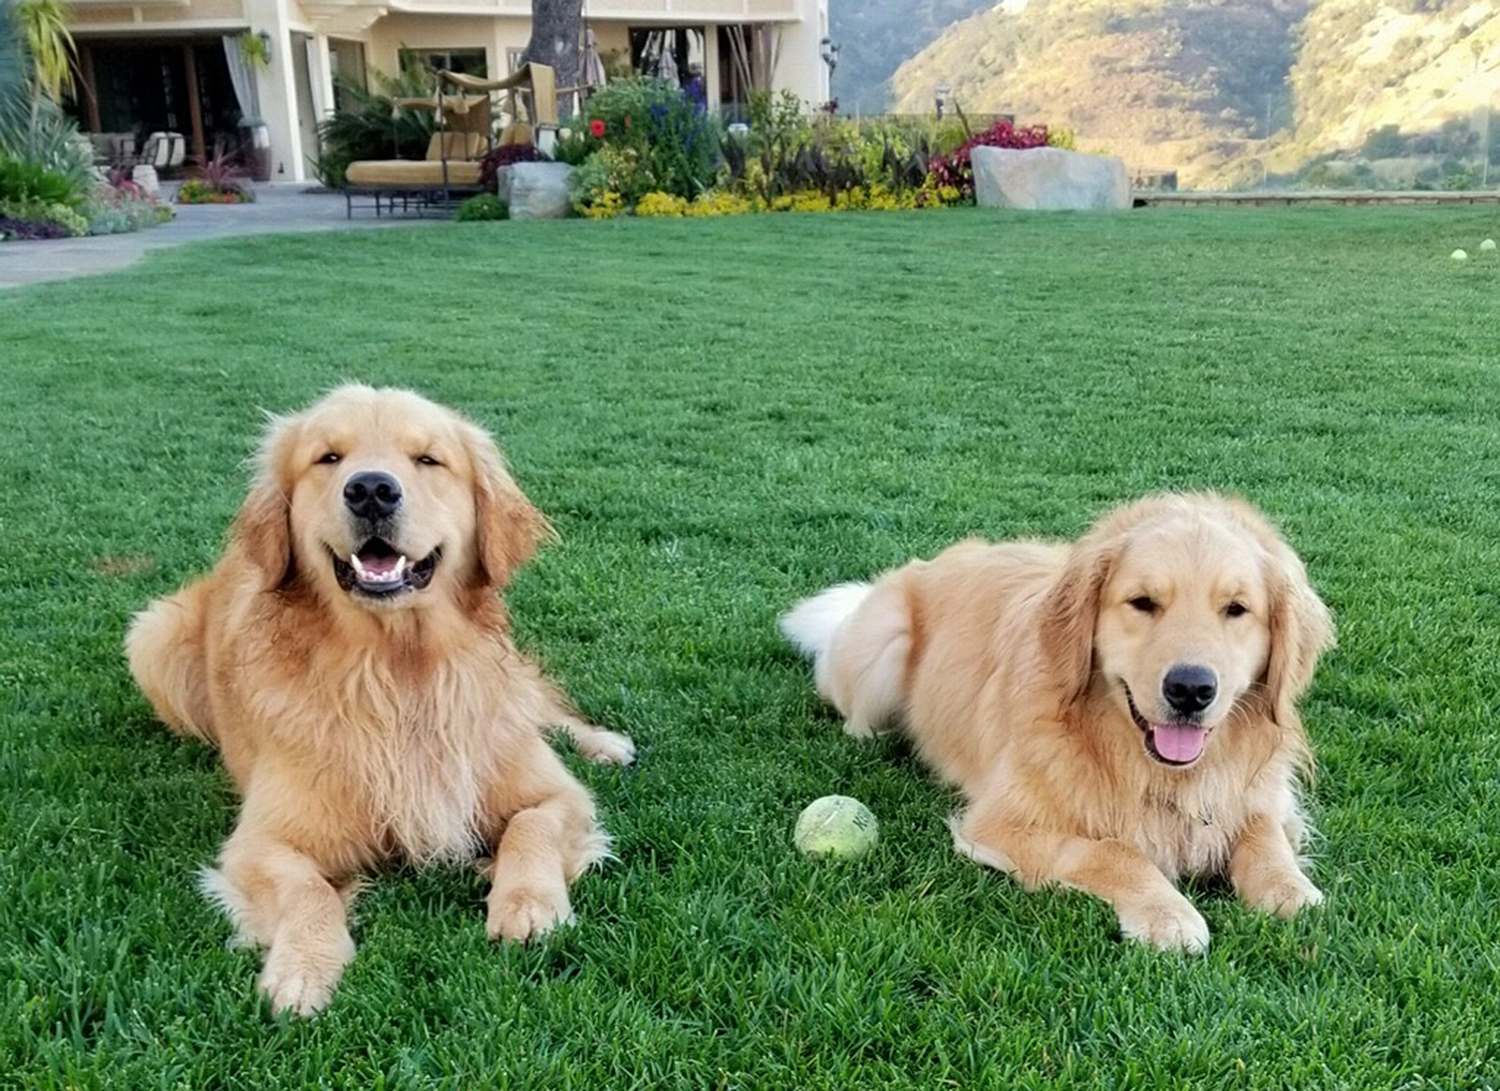 Full House dogs